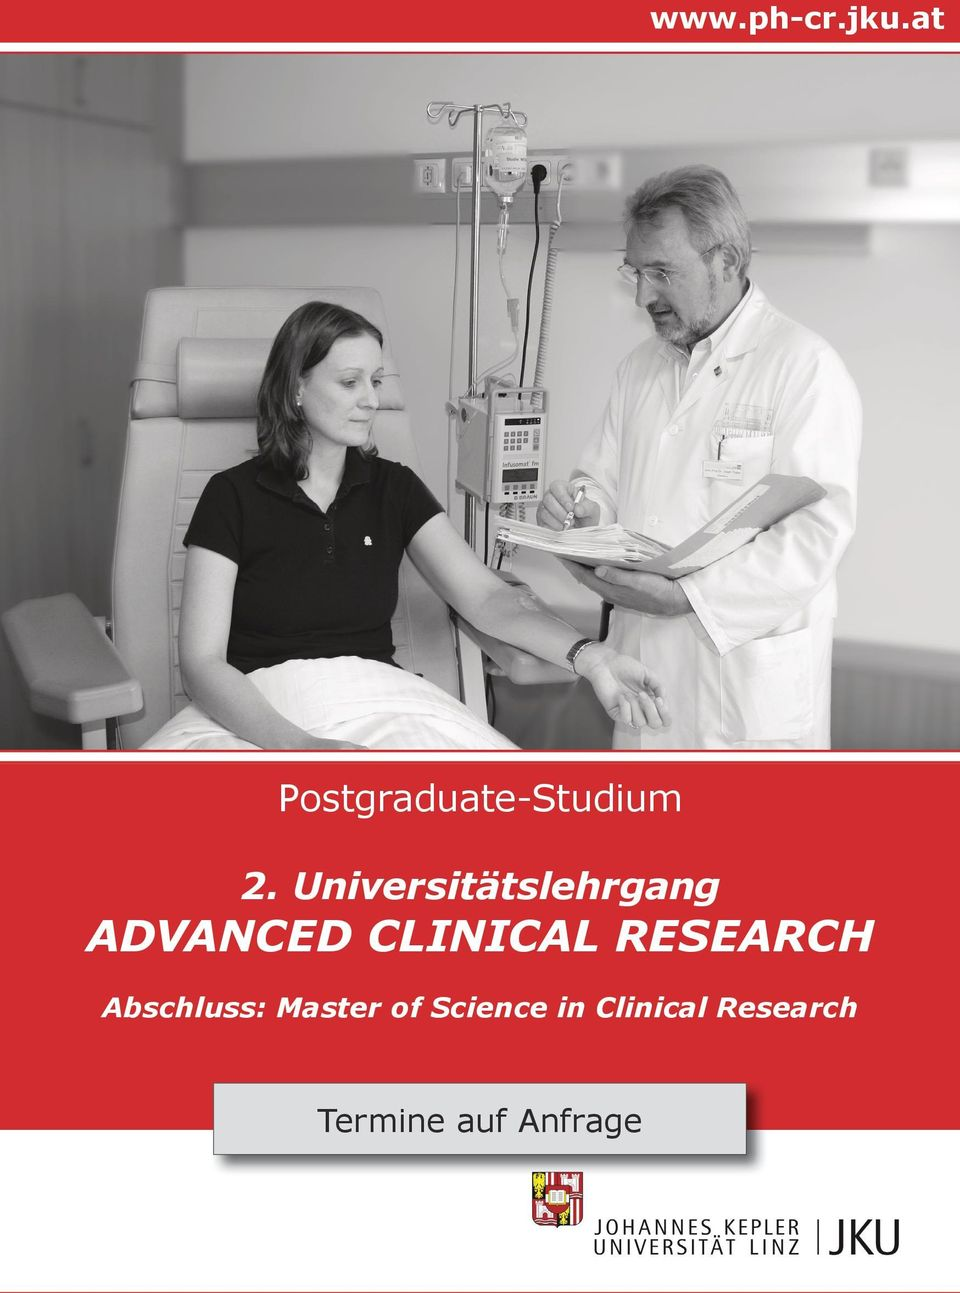 RESEARCH Abschluss: Master of Science